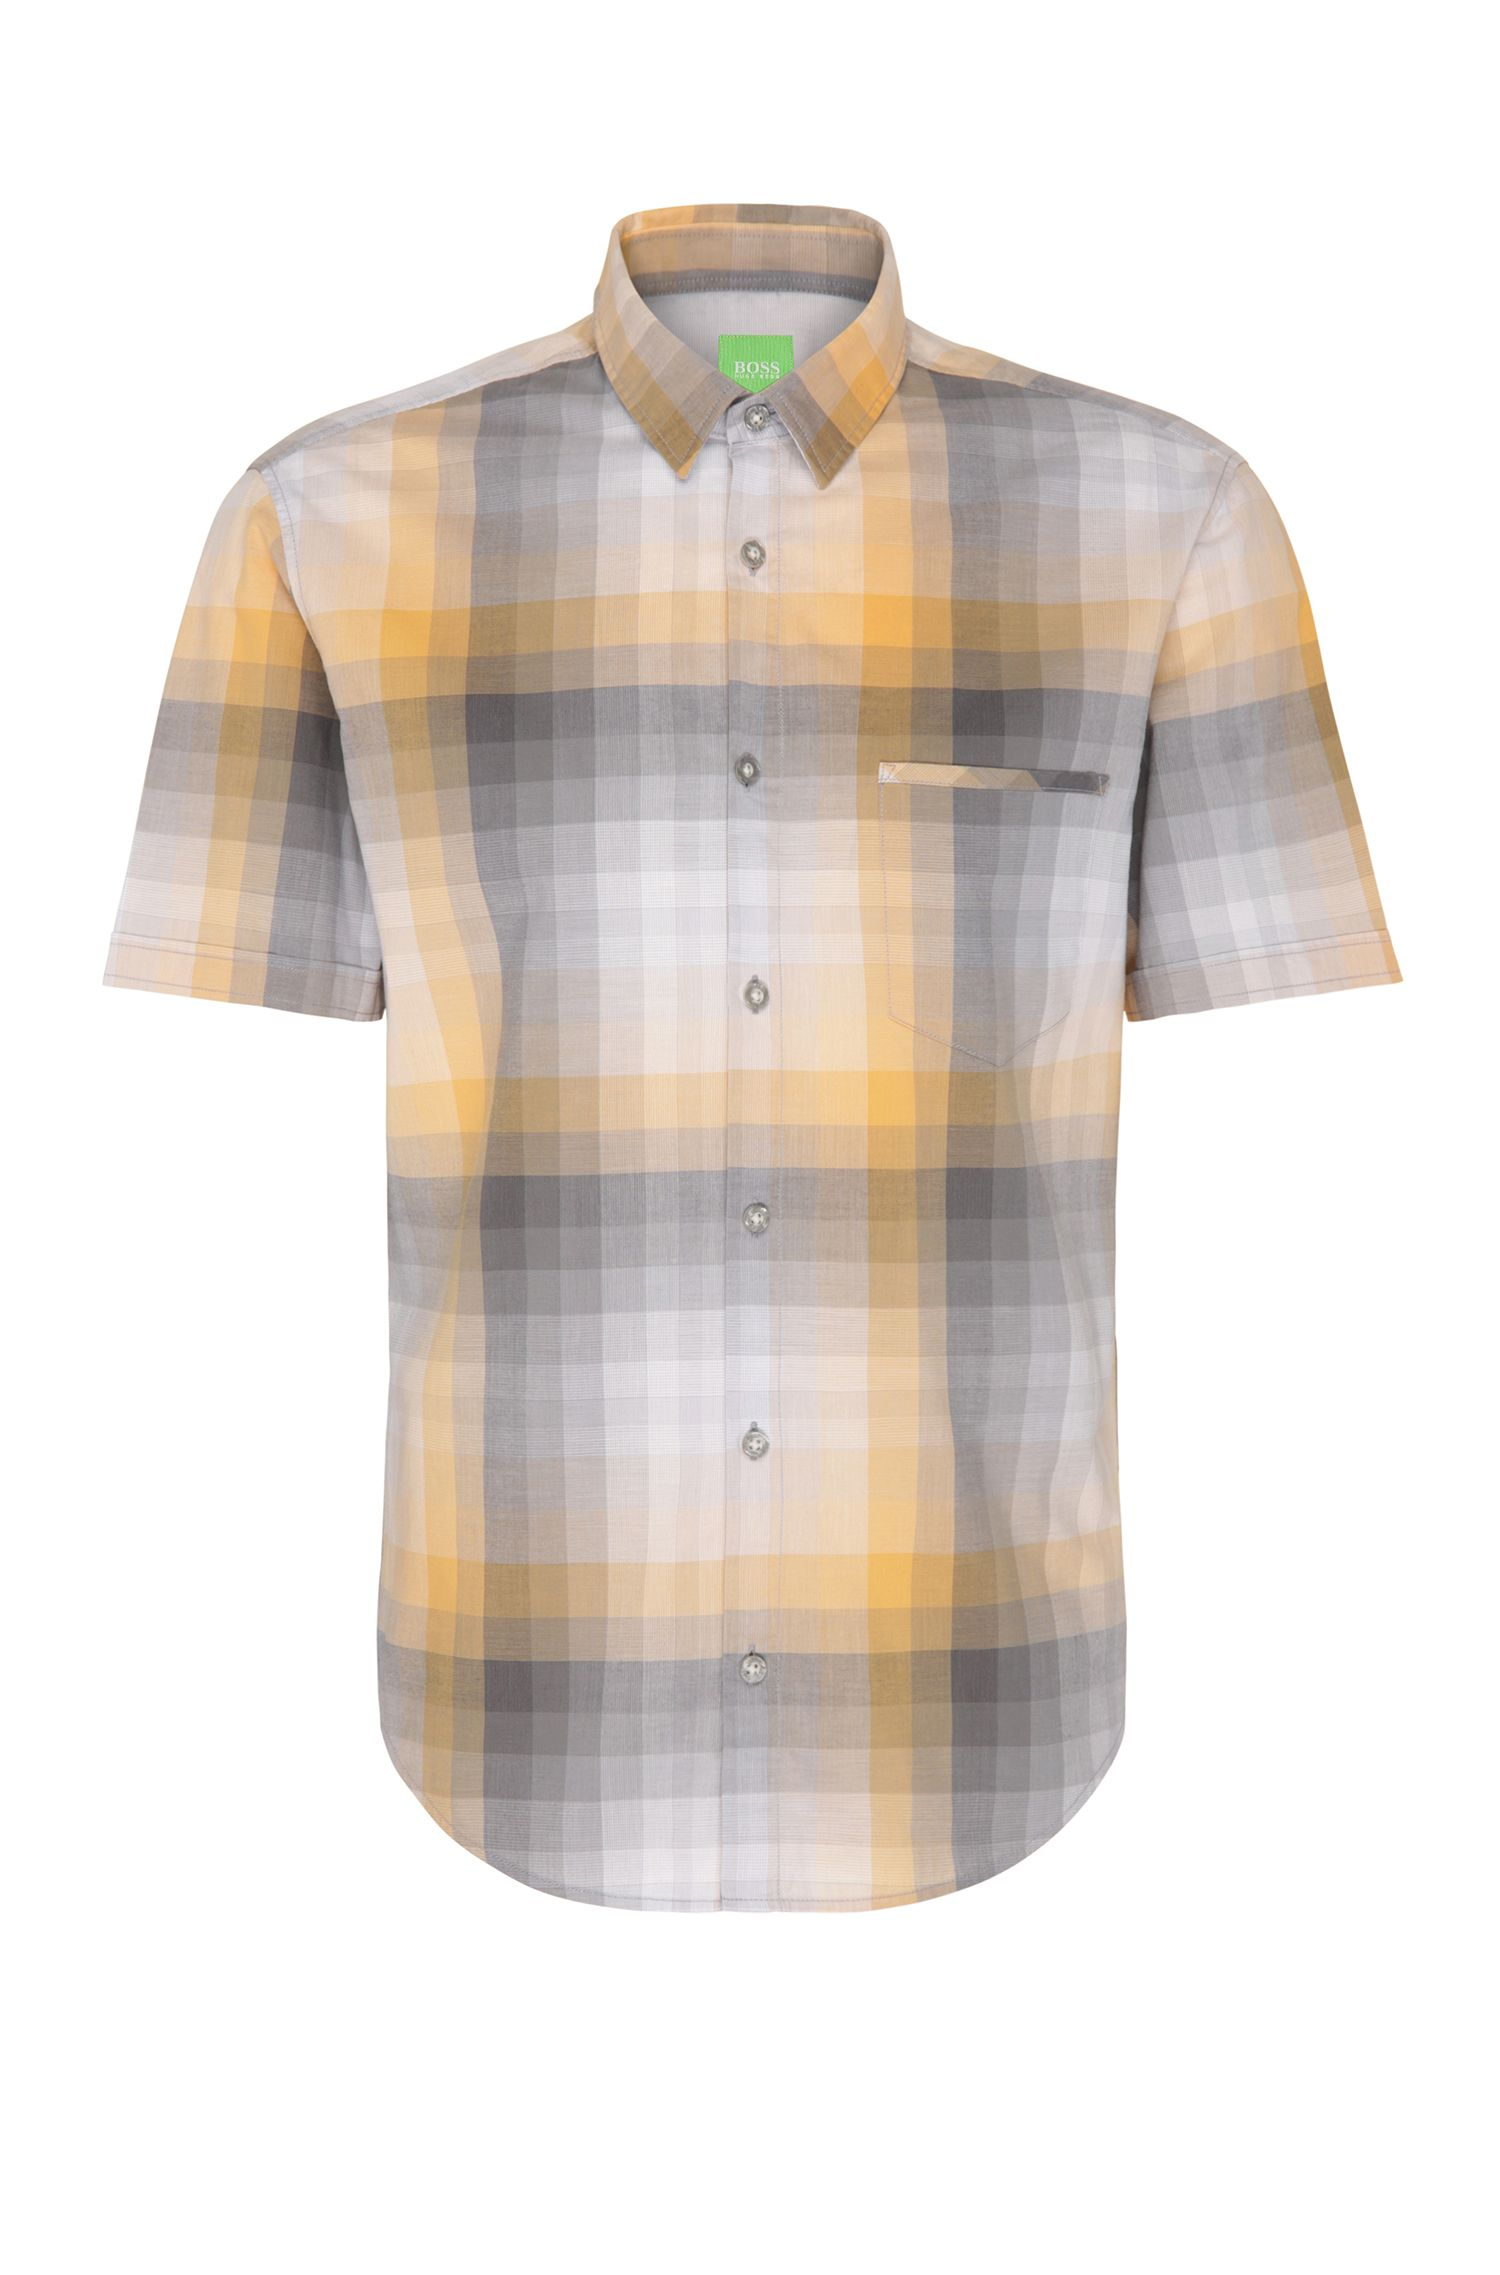 Gradient Checked Cotton Shirt, Regular Fit | C-Bansino